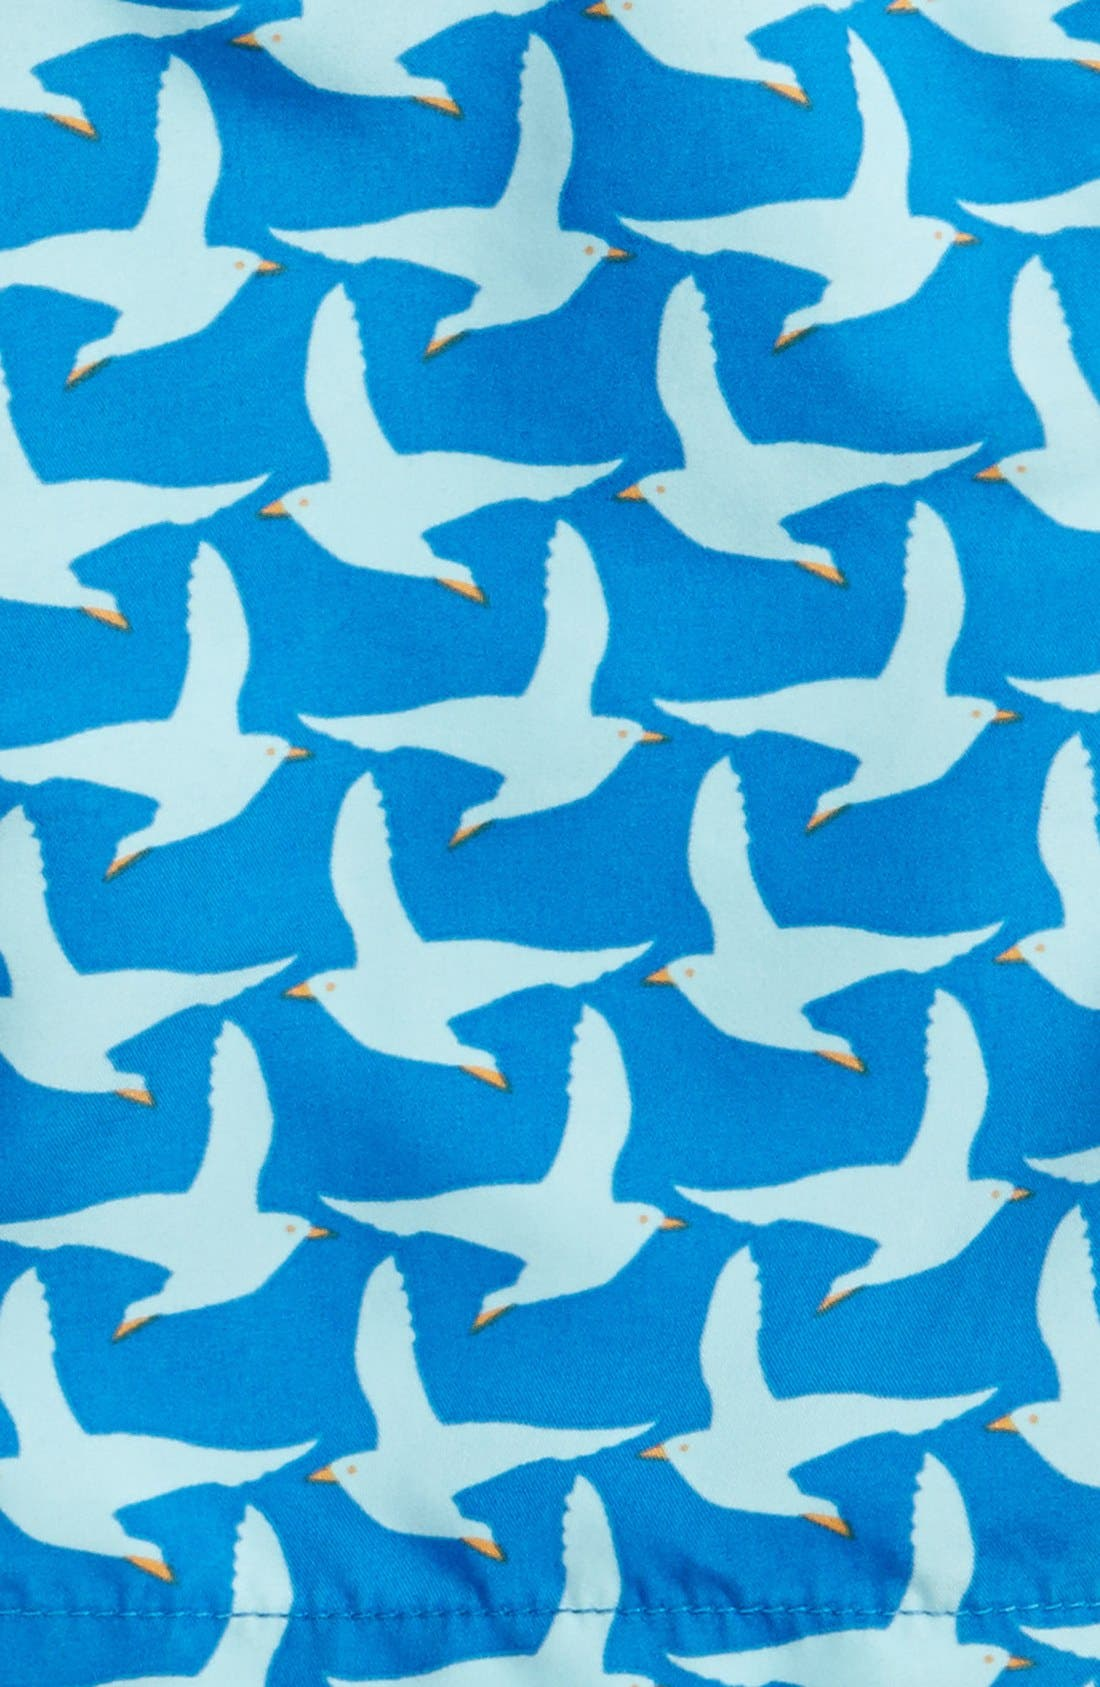 'Pattern Seagulls' Swim Trunks,                             Alternate thumbnail 3, color,                             COBALT BLUE